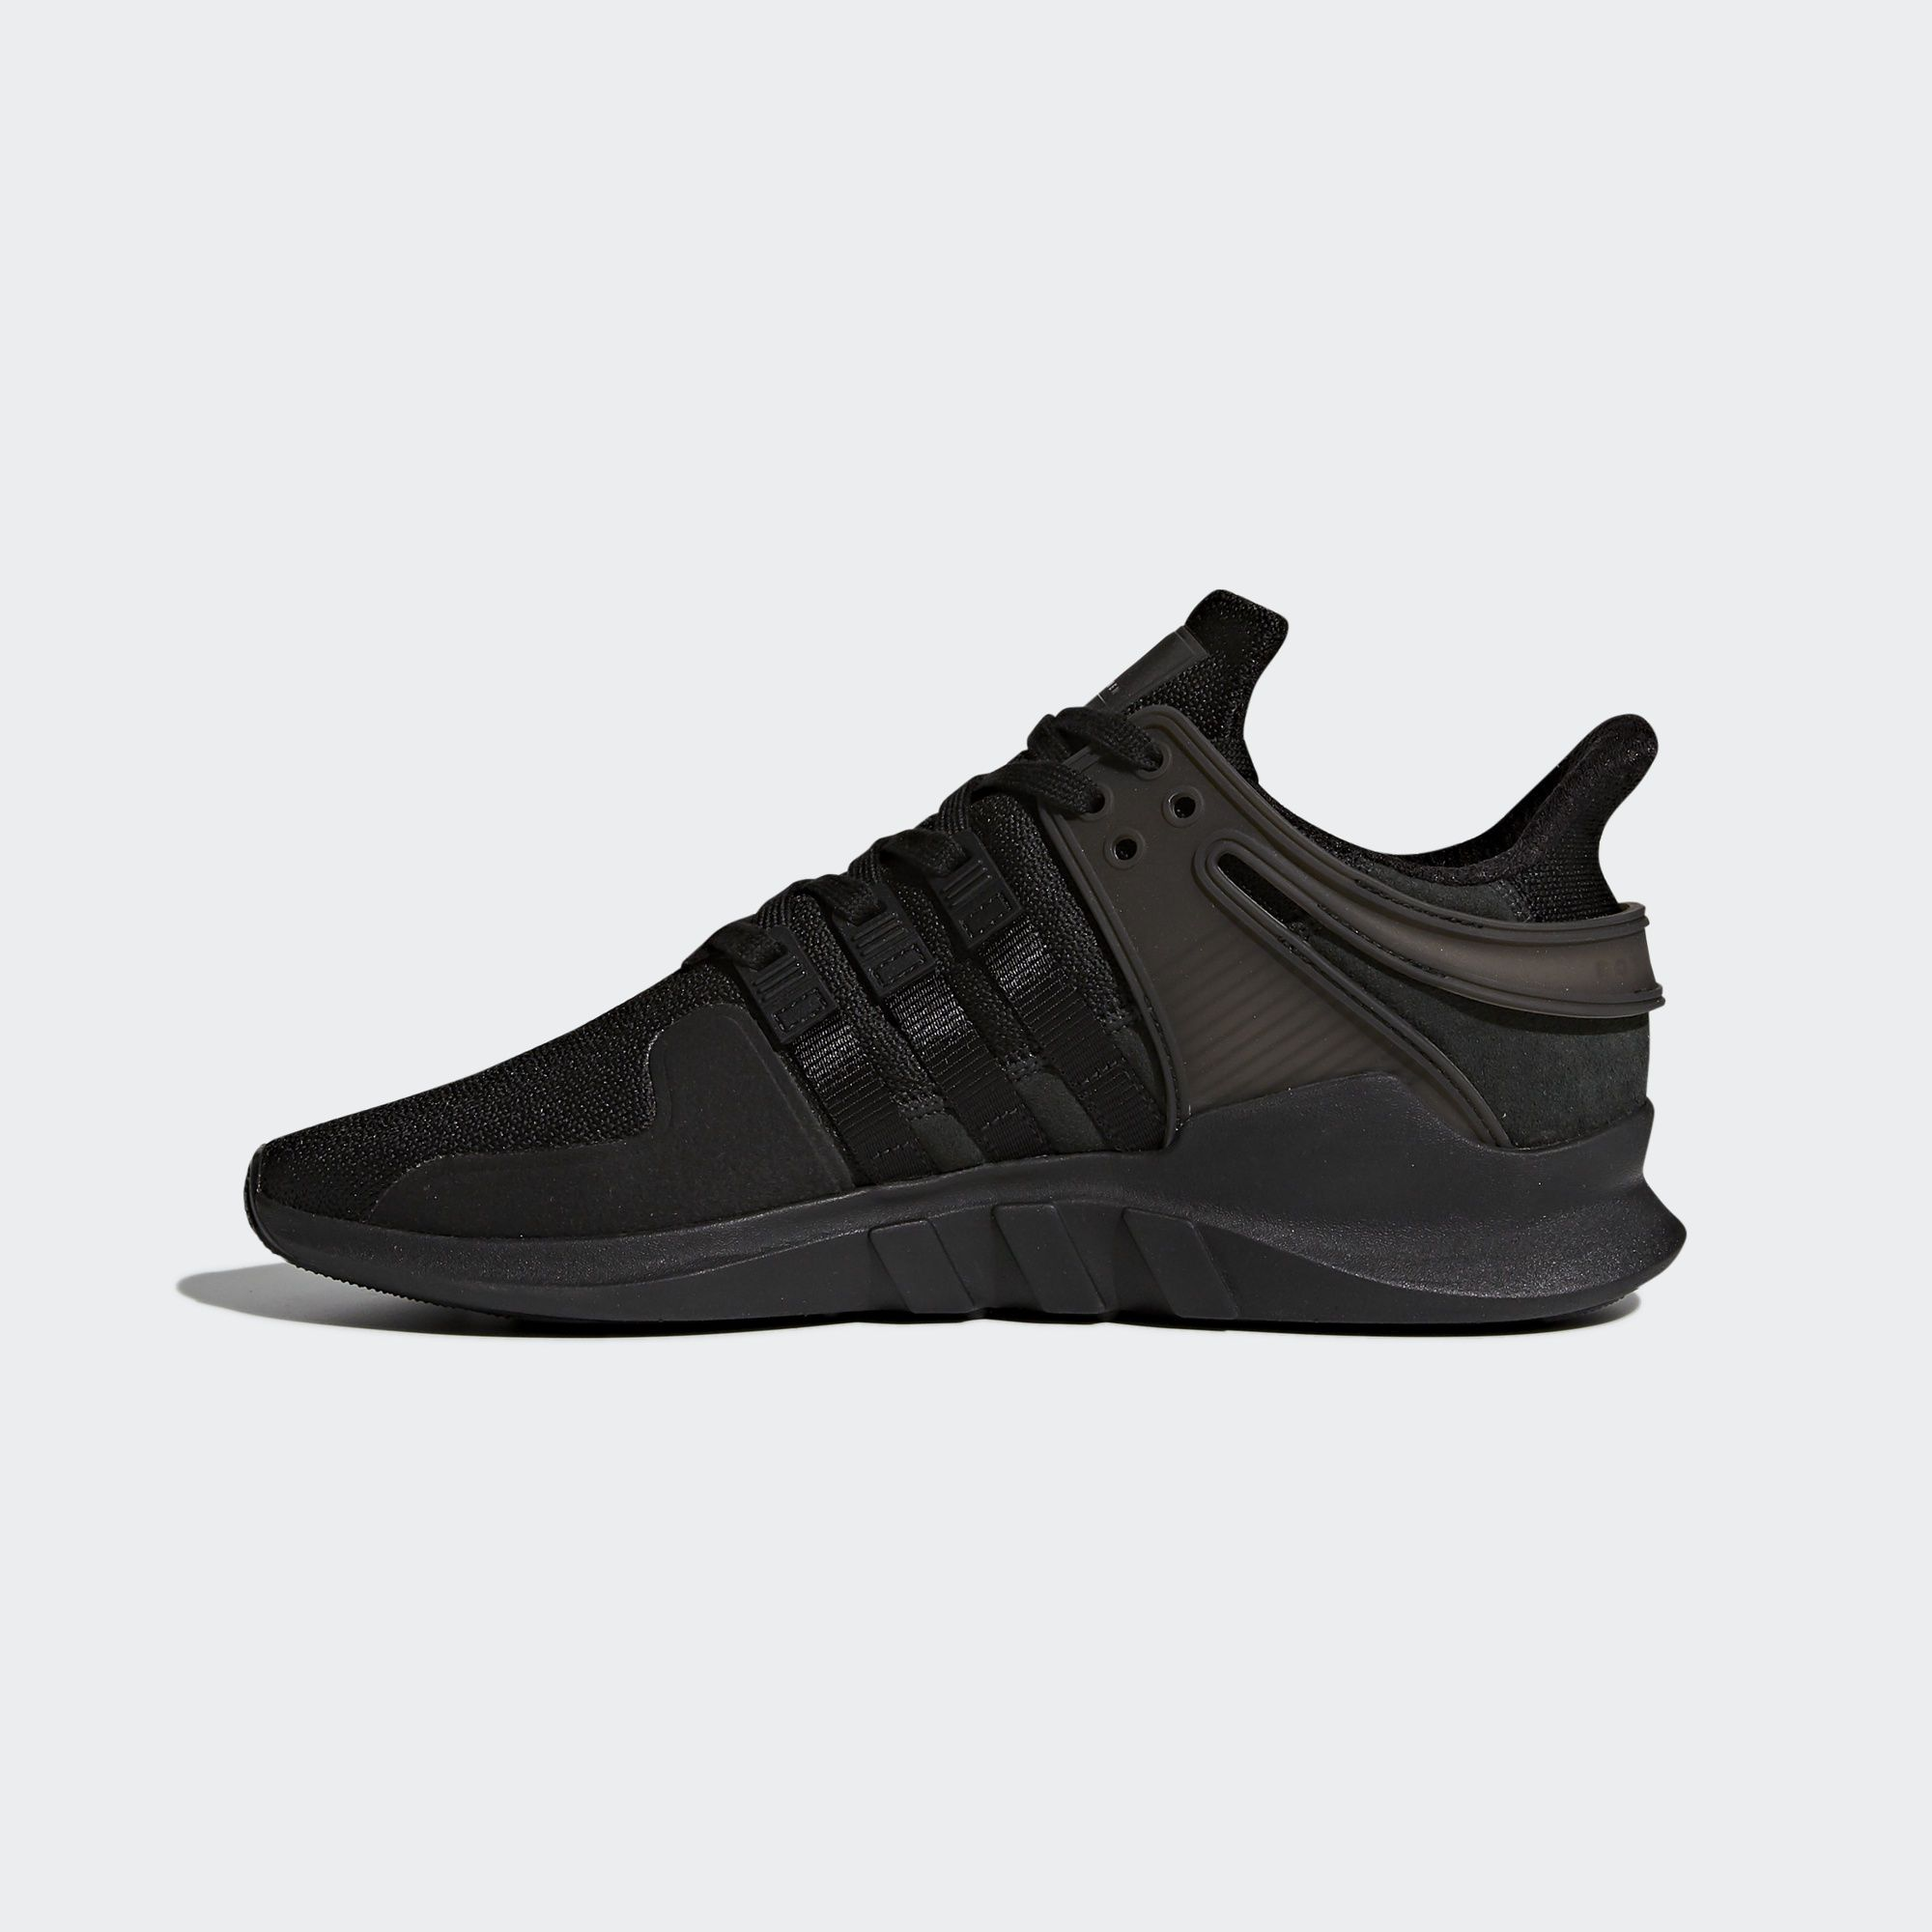 adidas Originals EQT Support ADV in Core Black/Sub Green for Black Friday |  Eqt support adv, Black friday and Adidas